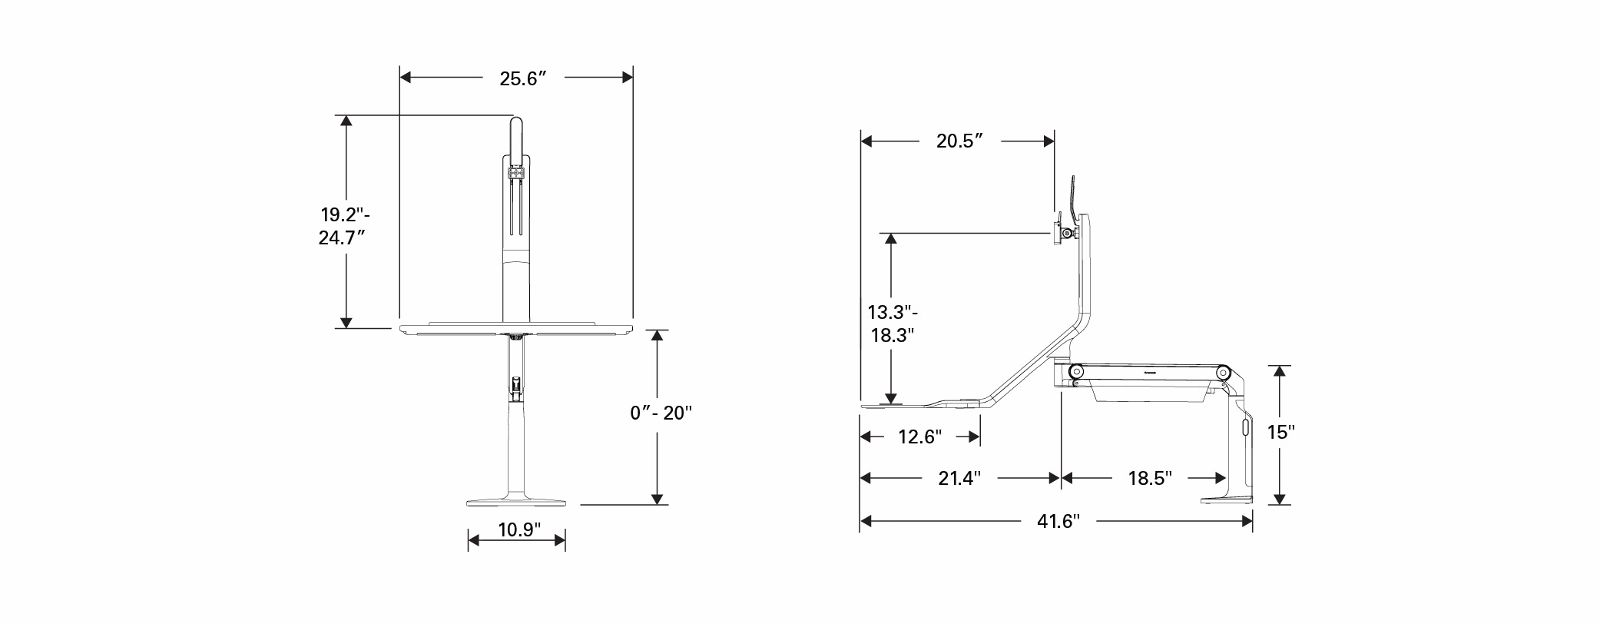 Quickstand Lite Diagram